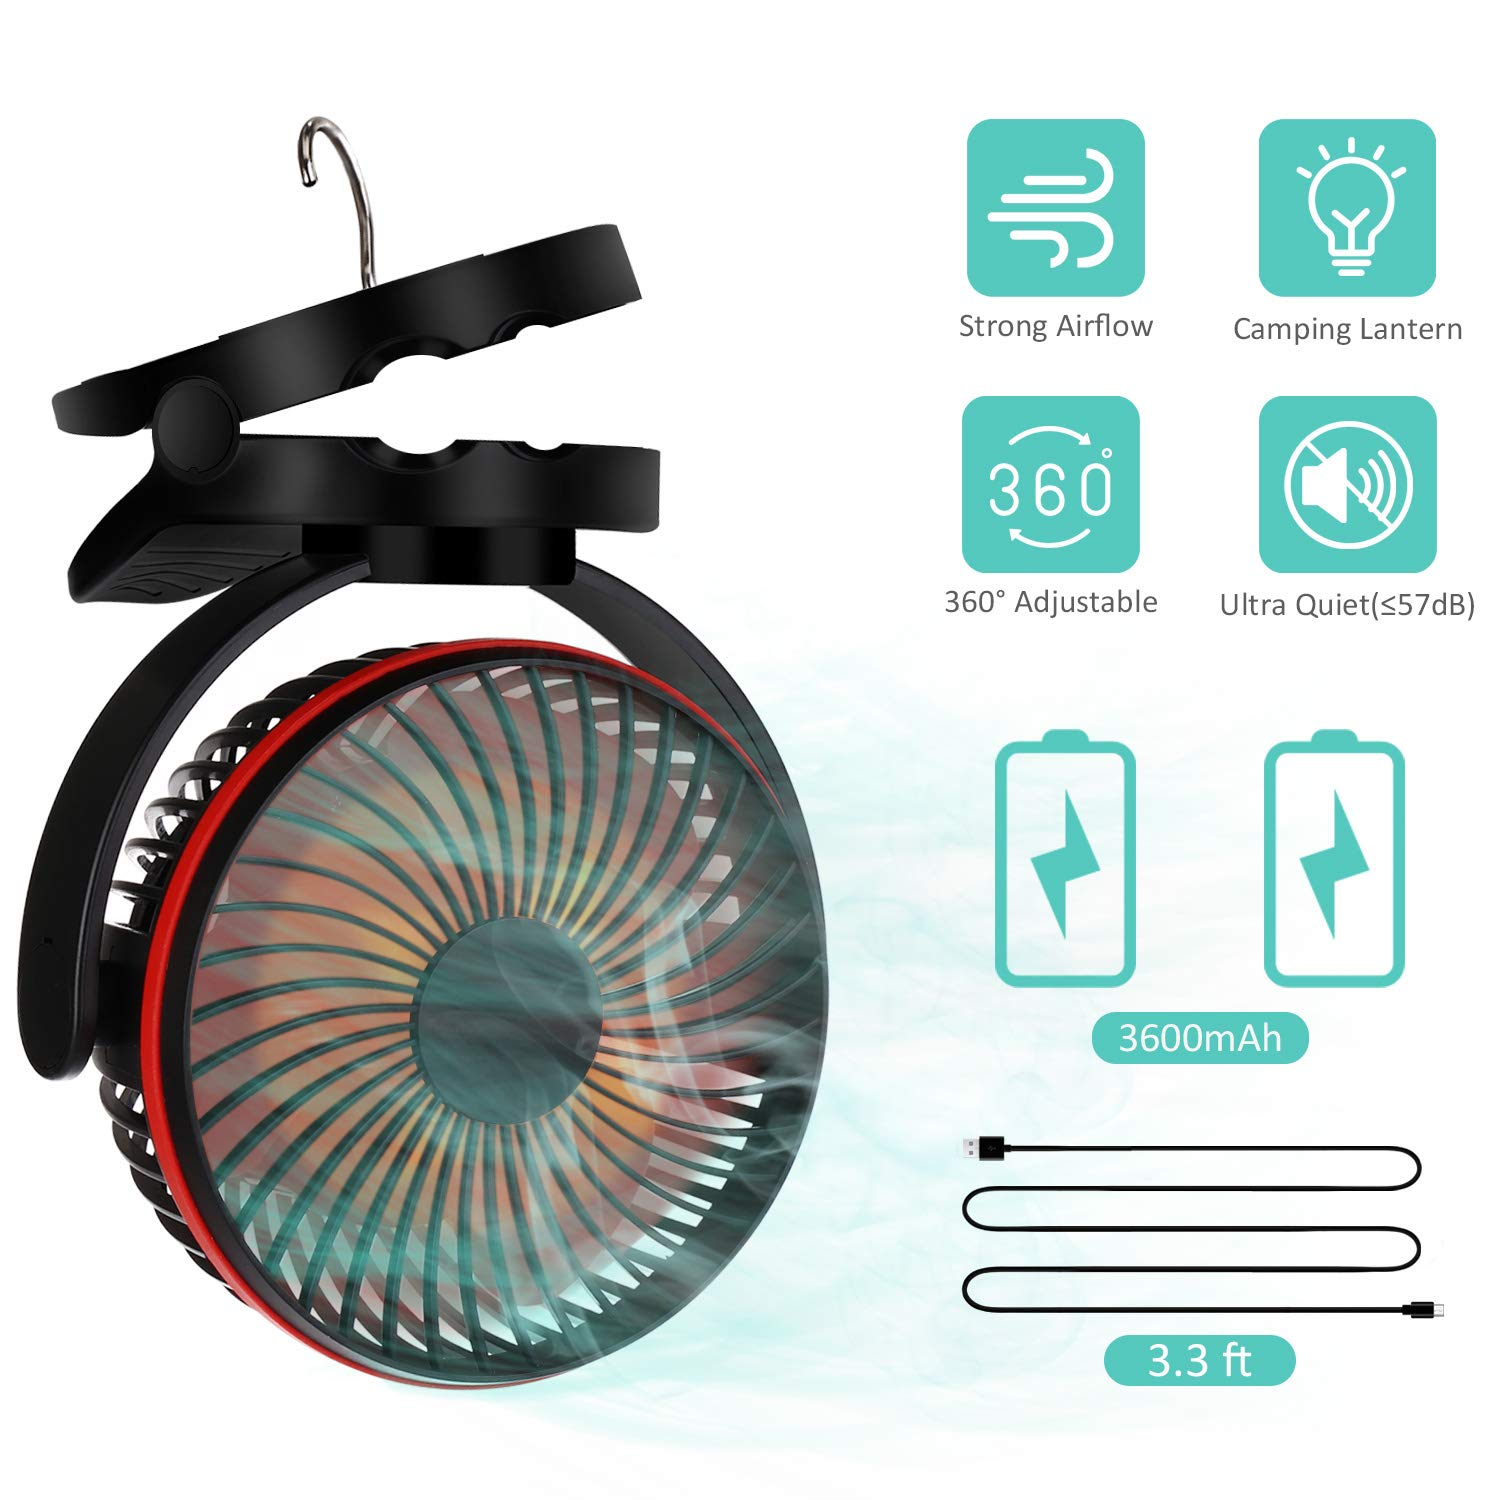 Battery Operated Clip Fan with Hanging Hook, Portable USB Desk Fan With Bright LED Light, Camping Lantern Fan, Rechargeable 3600mAh Battery Fan,Wall Fan, Mini Quiet Fan for Stroller Home Office Travel by COMLIFE